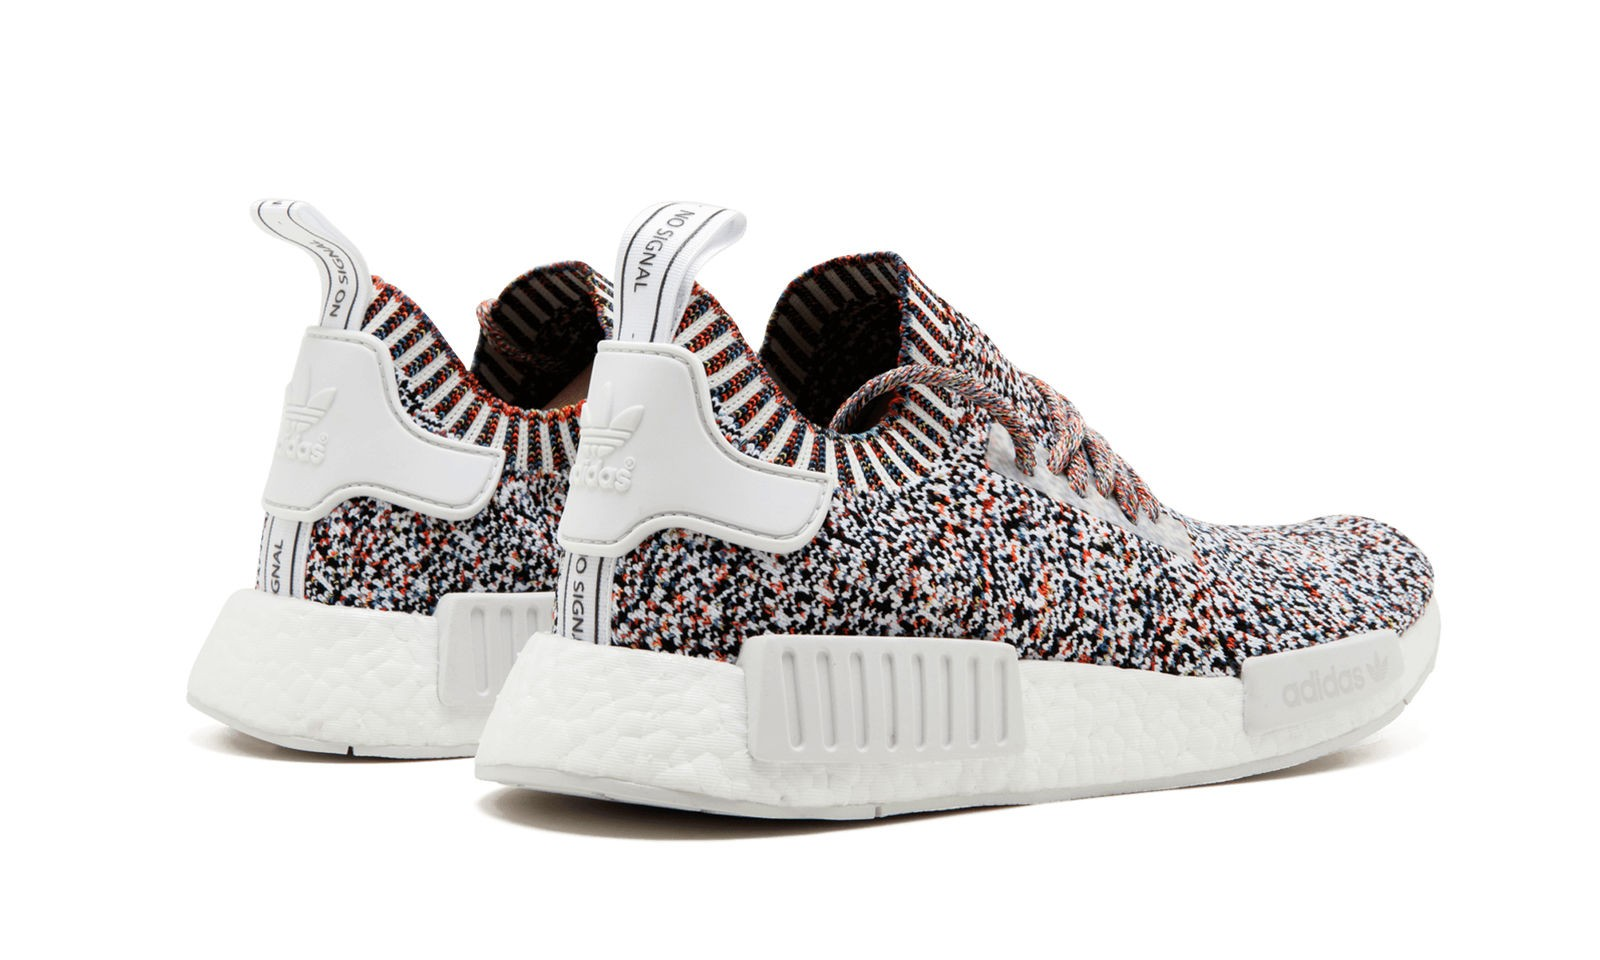 Adidas NMD R1 PK Primeknit Rainbow Static Multi Color BW1126